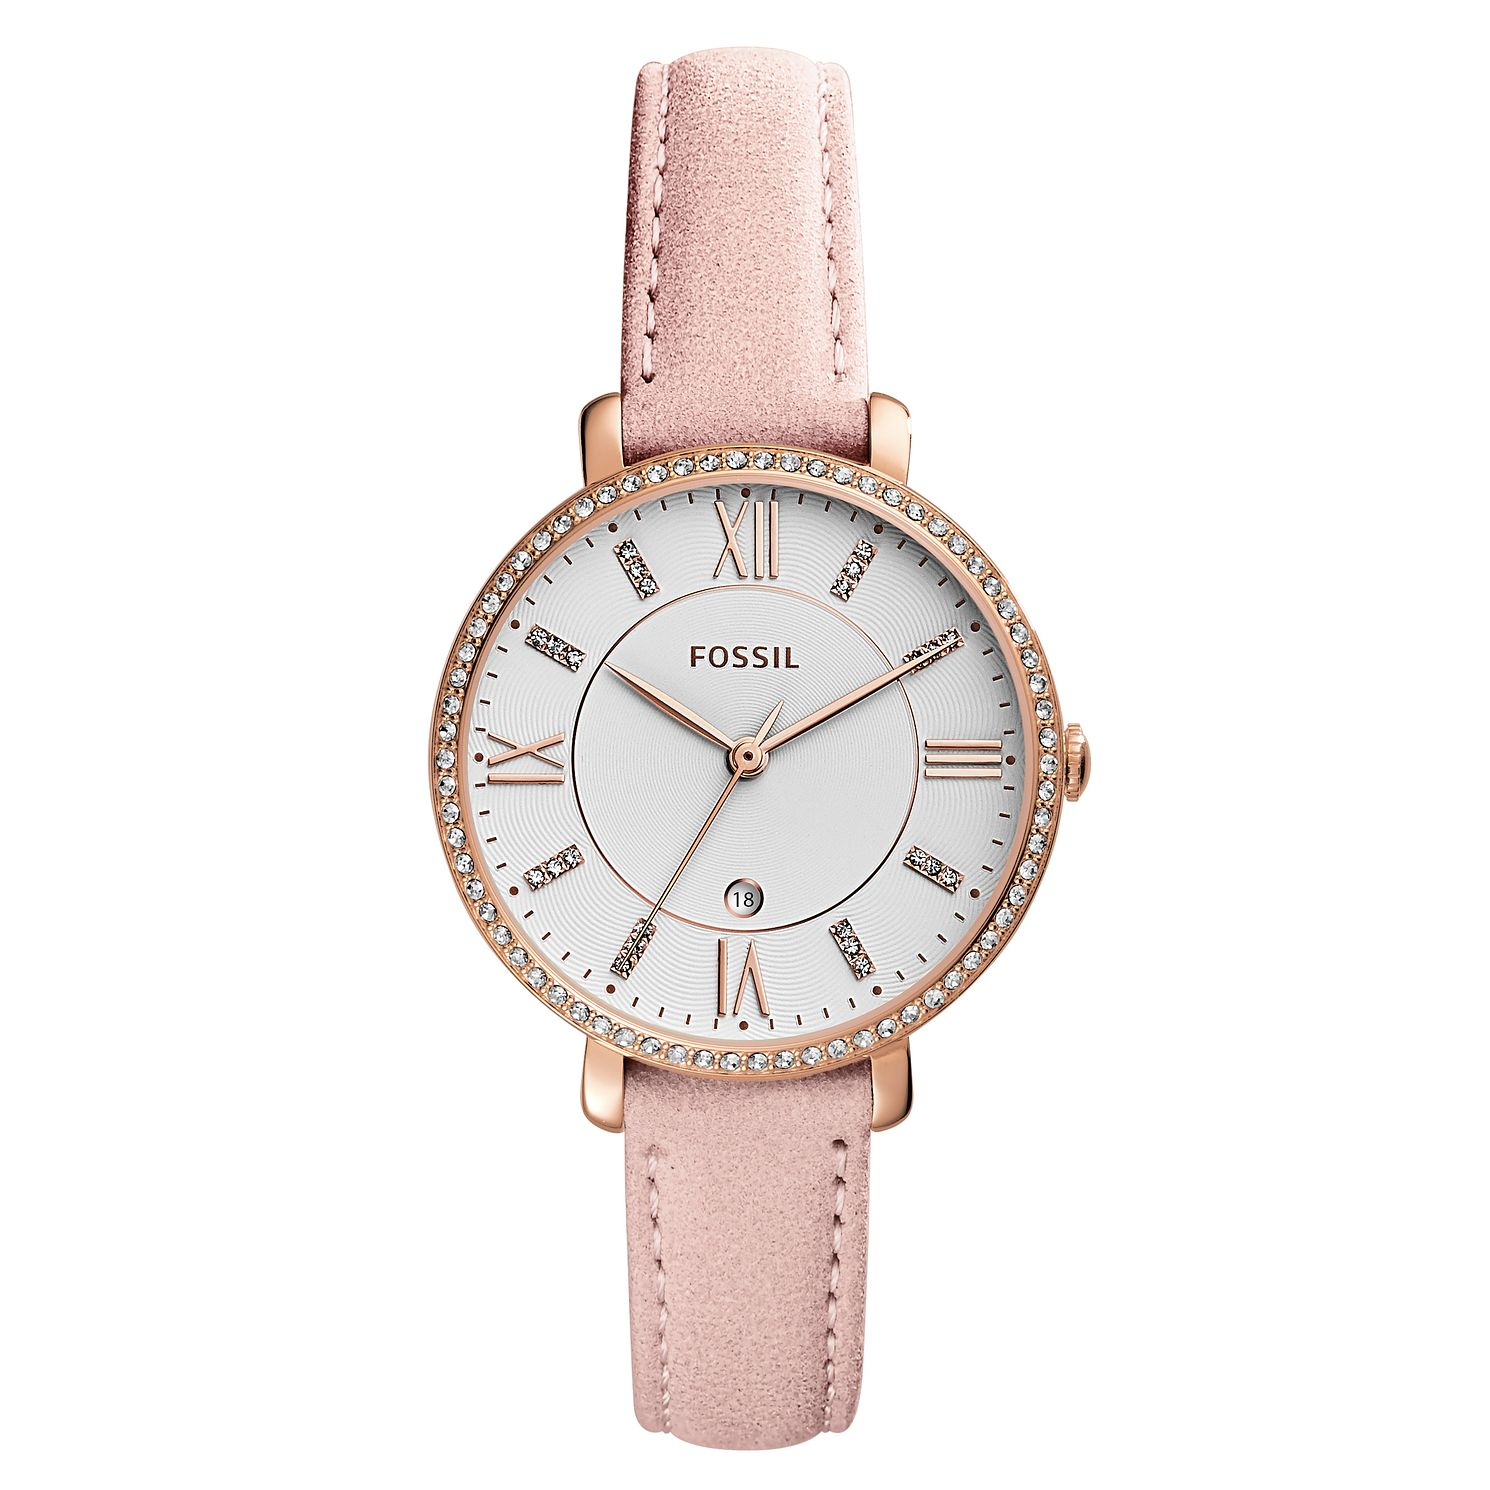 Fossil Ladies' Pink Leather Strap Watch - Product number 4173481